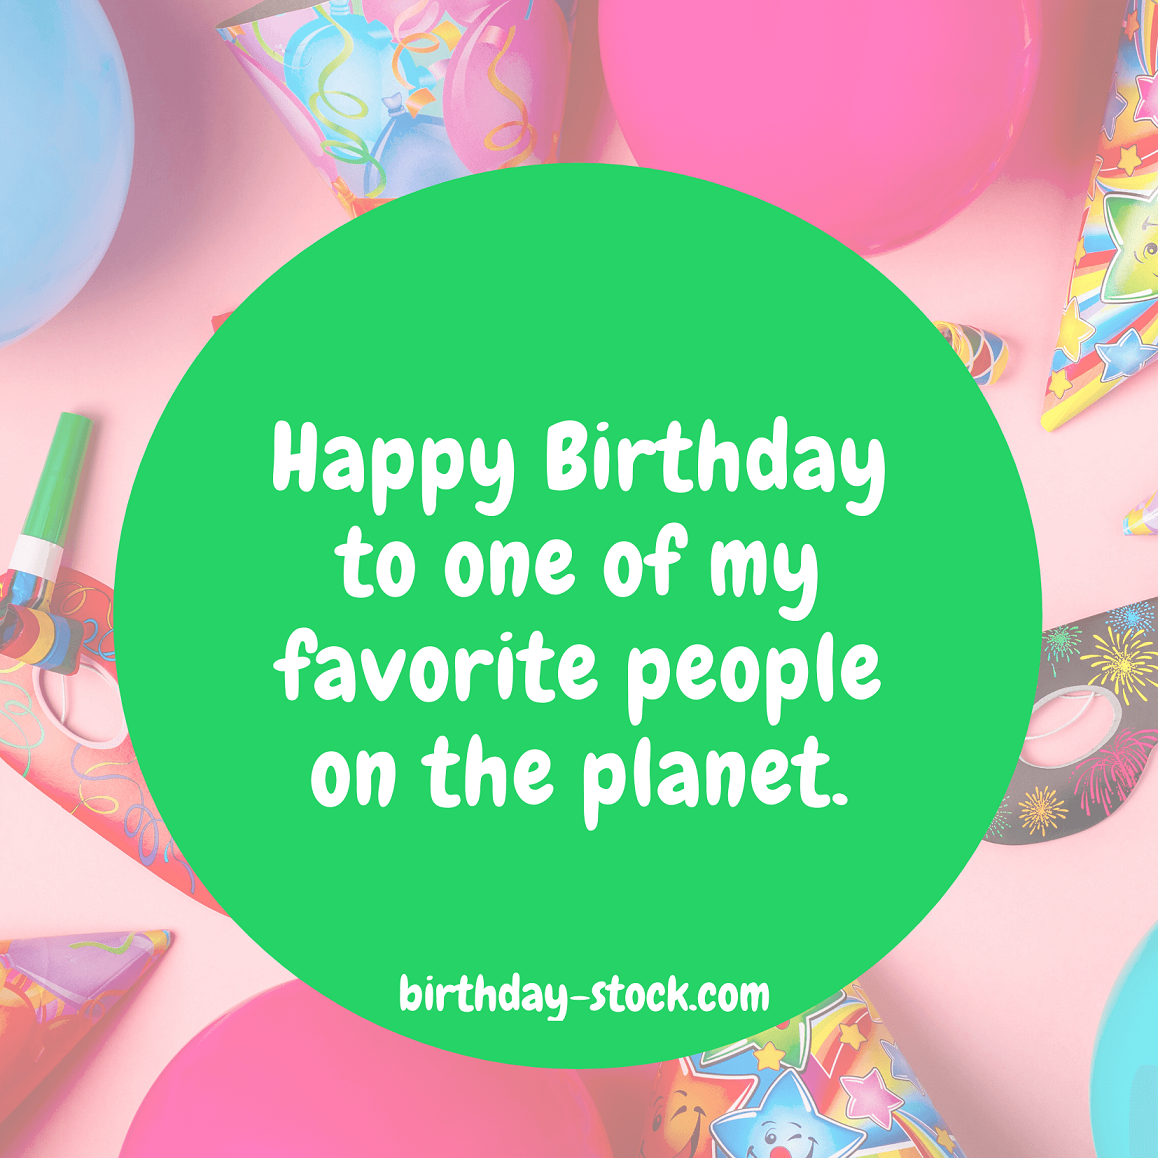 Sensational Top 100 Happy Birthday Wishes 2020 Quotes For Friends Funny Birthday Cards Online Alyptdamsfinfo